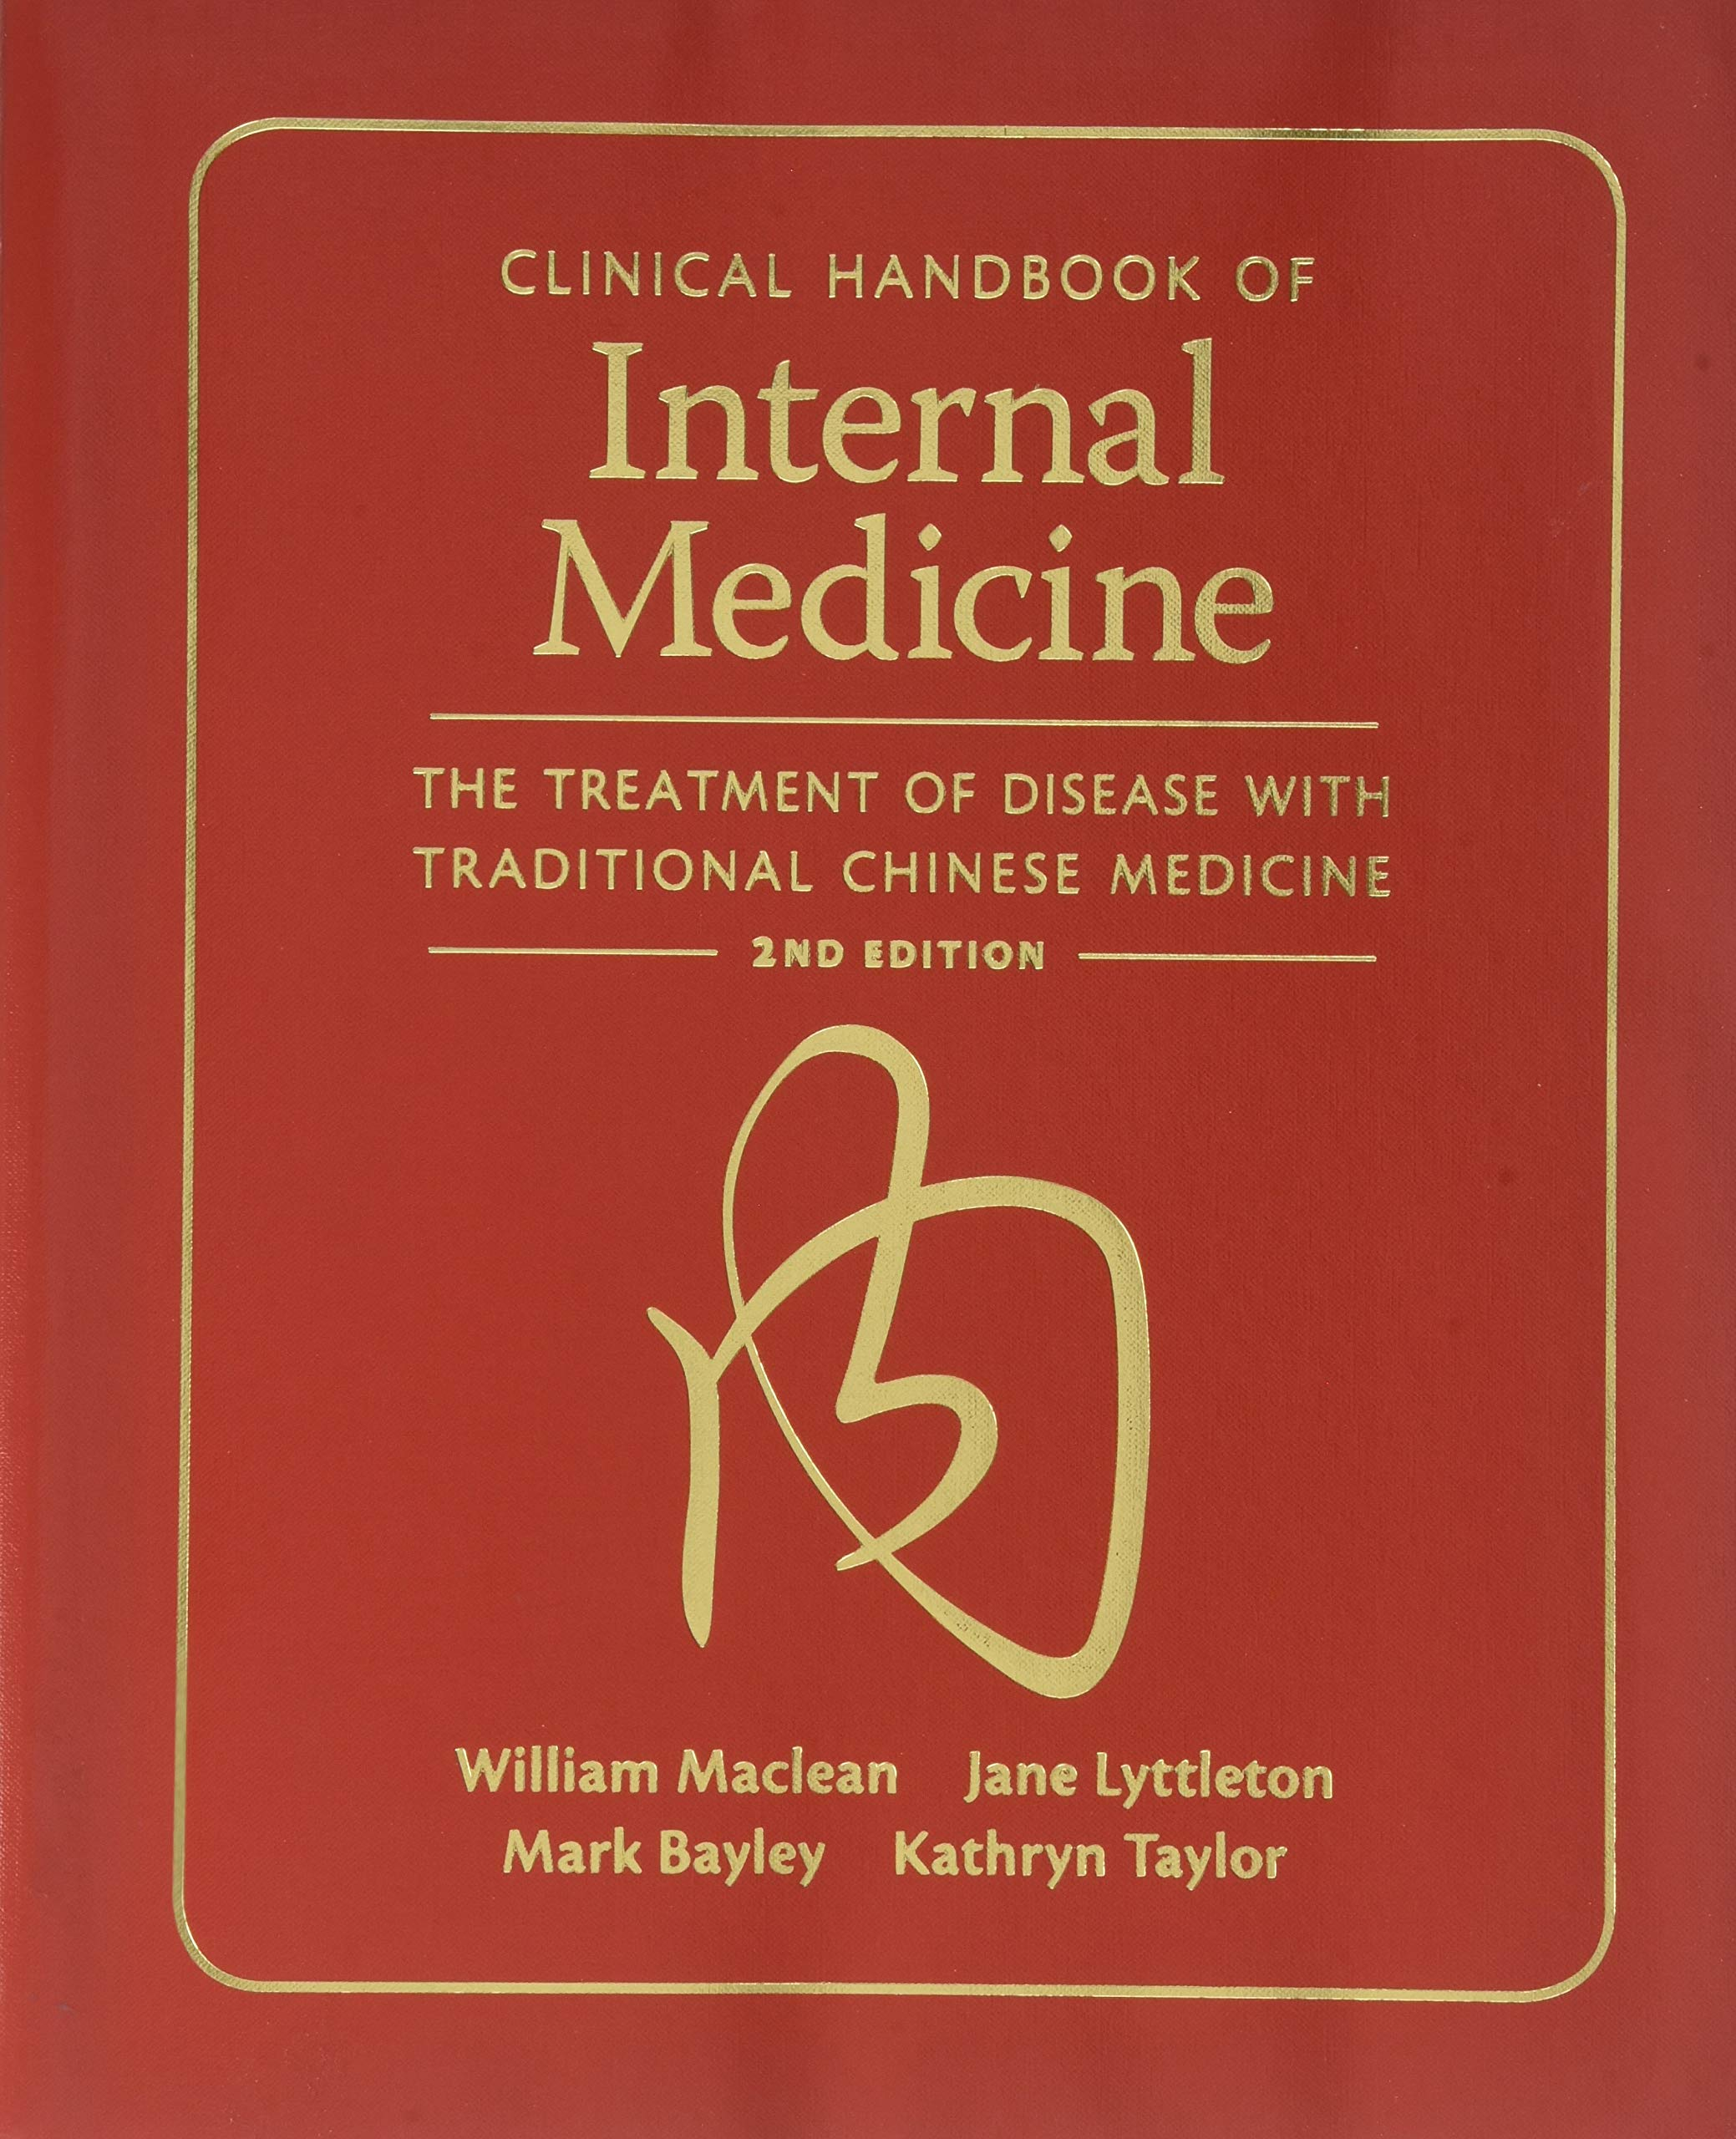 Clinical Handbook of Internal Medicine: The Treatment of Disease With Traditional Chinese Medicine